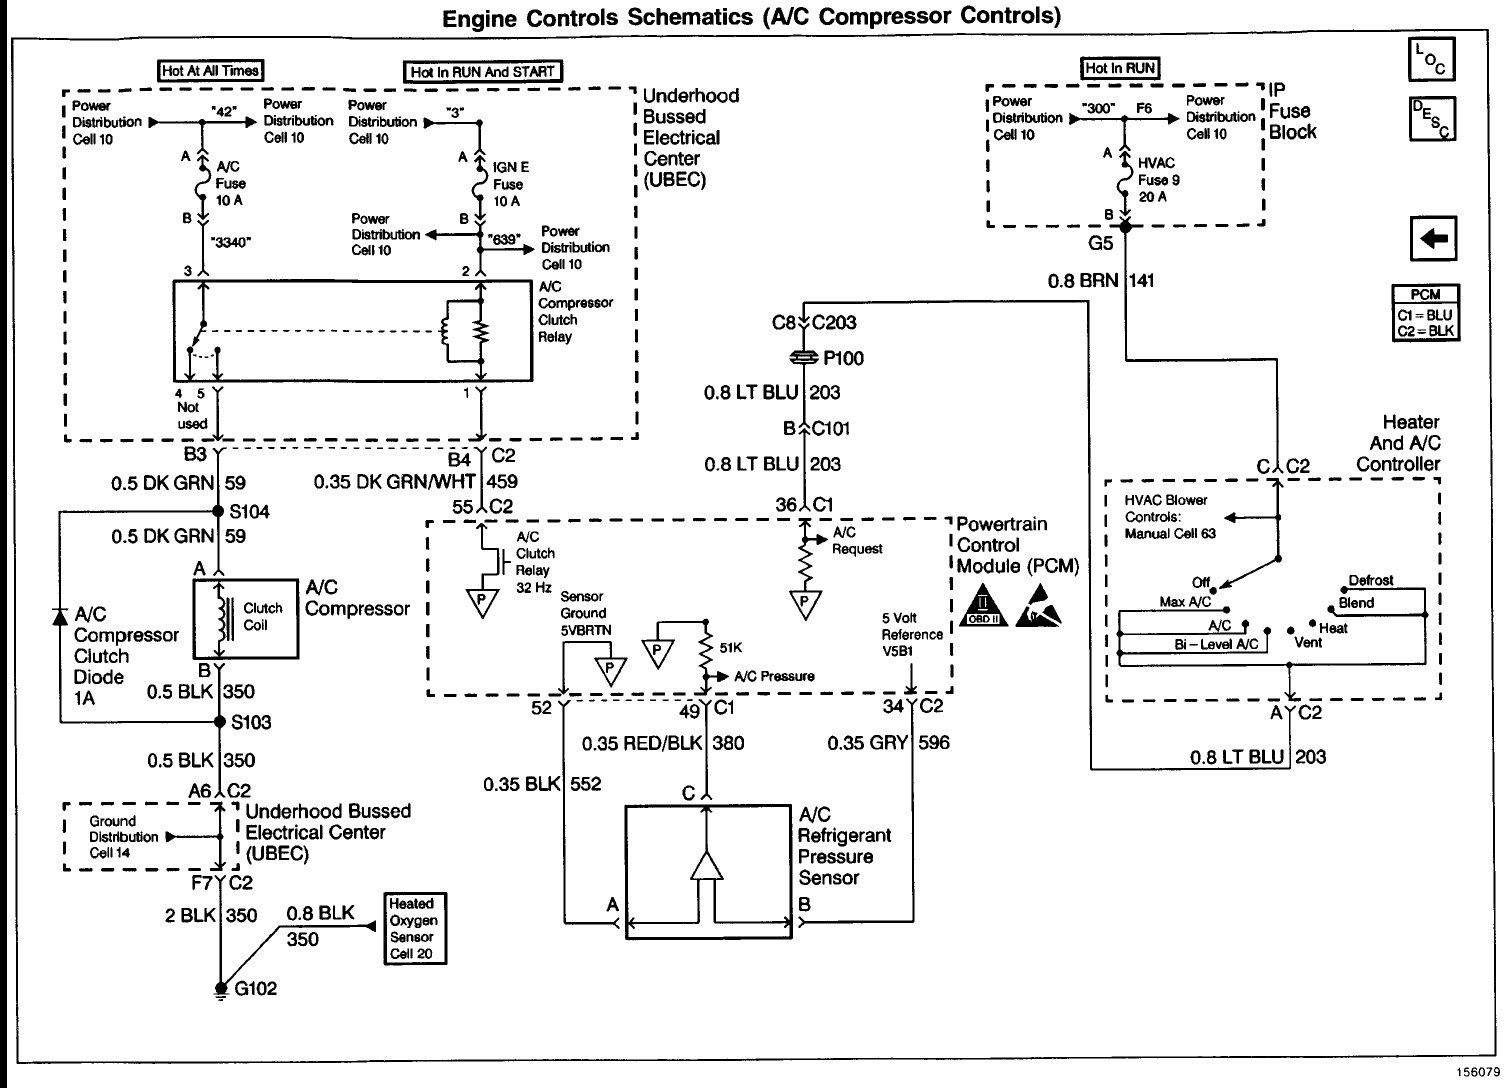 small resolution of s10 pcm wiring schematic wiring diagram standards10 pcm wiring schematic wiring diagram blogs10 pcm wiring schematic